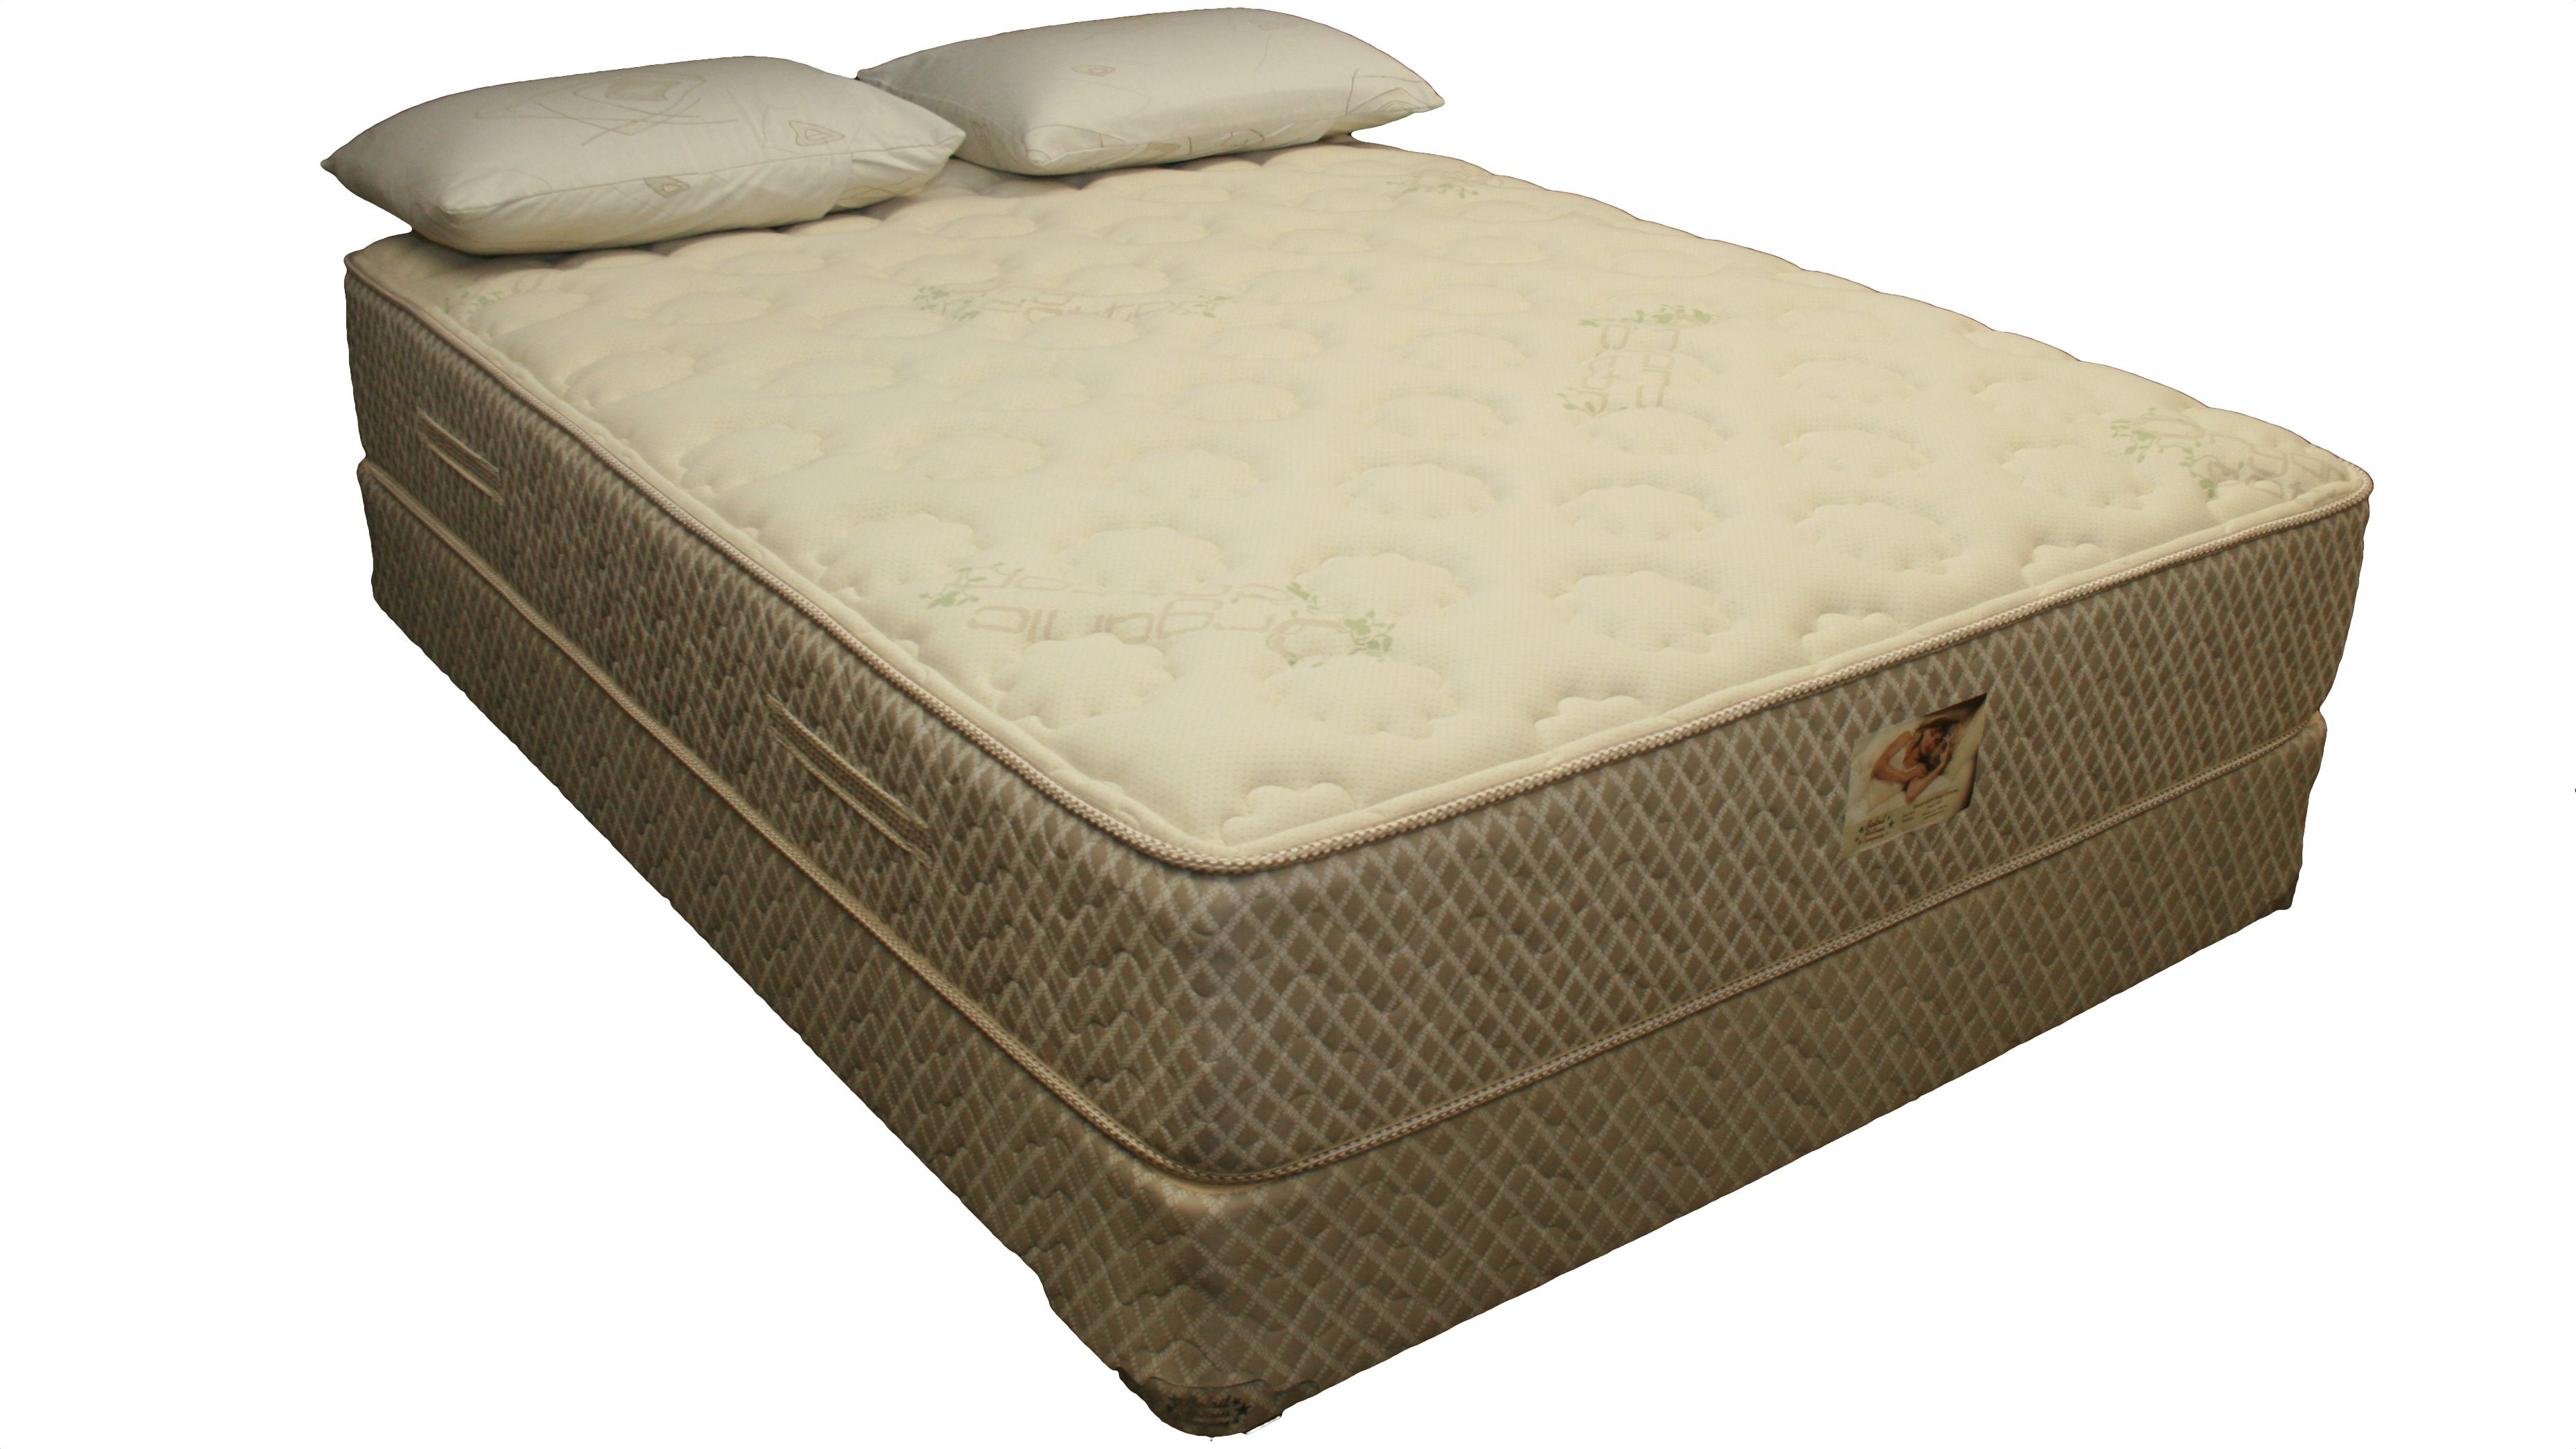 Firmest Mattresses On The Market The Orthopedic Supreme Is Our Firmest Dual Coil System Mattress